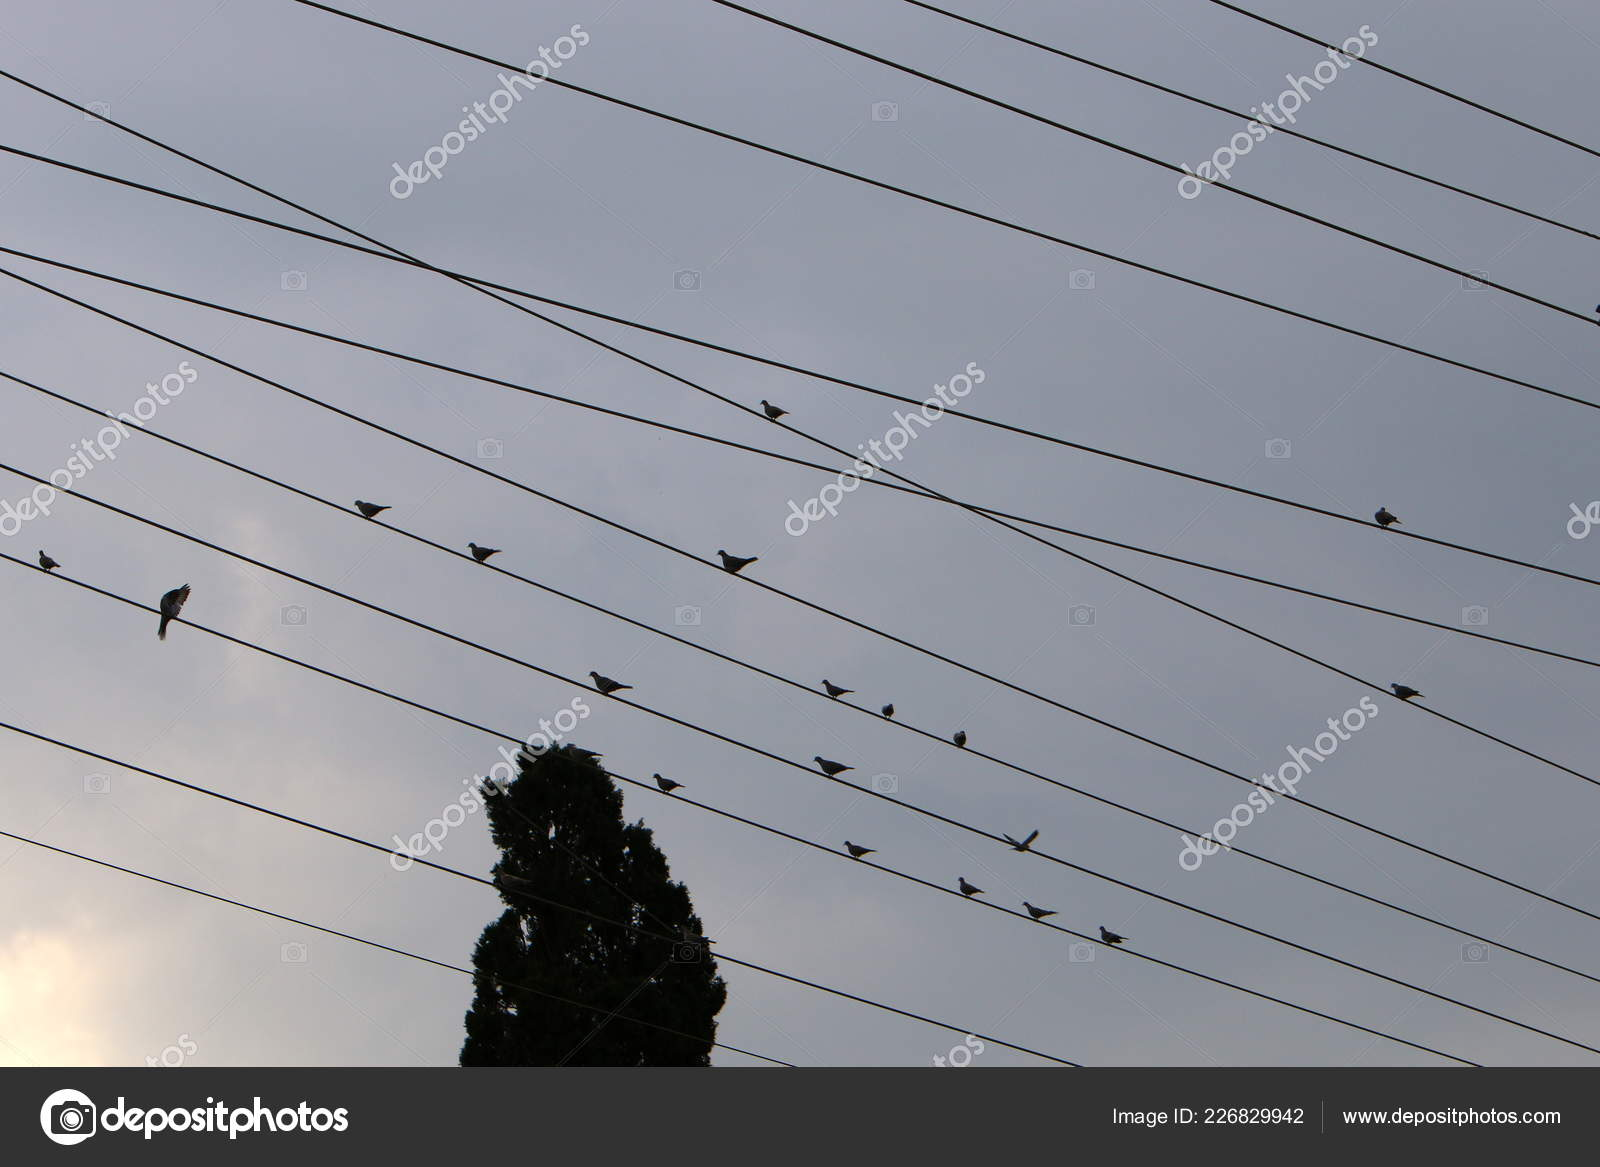 hight resolution of electrical wires support which electricity stock photo